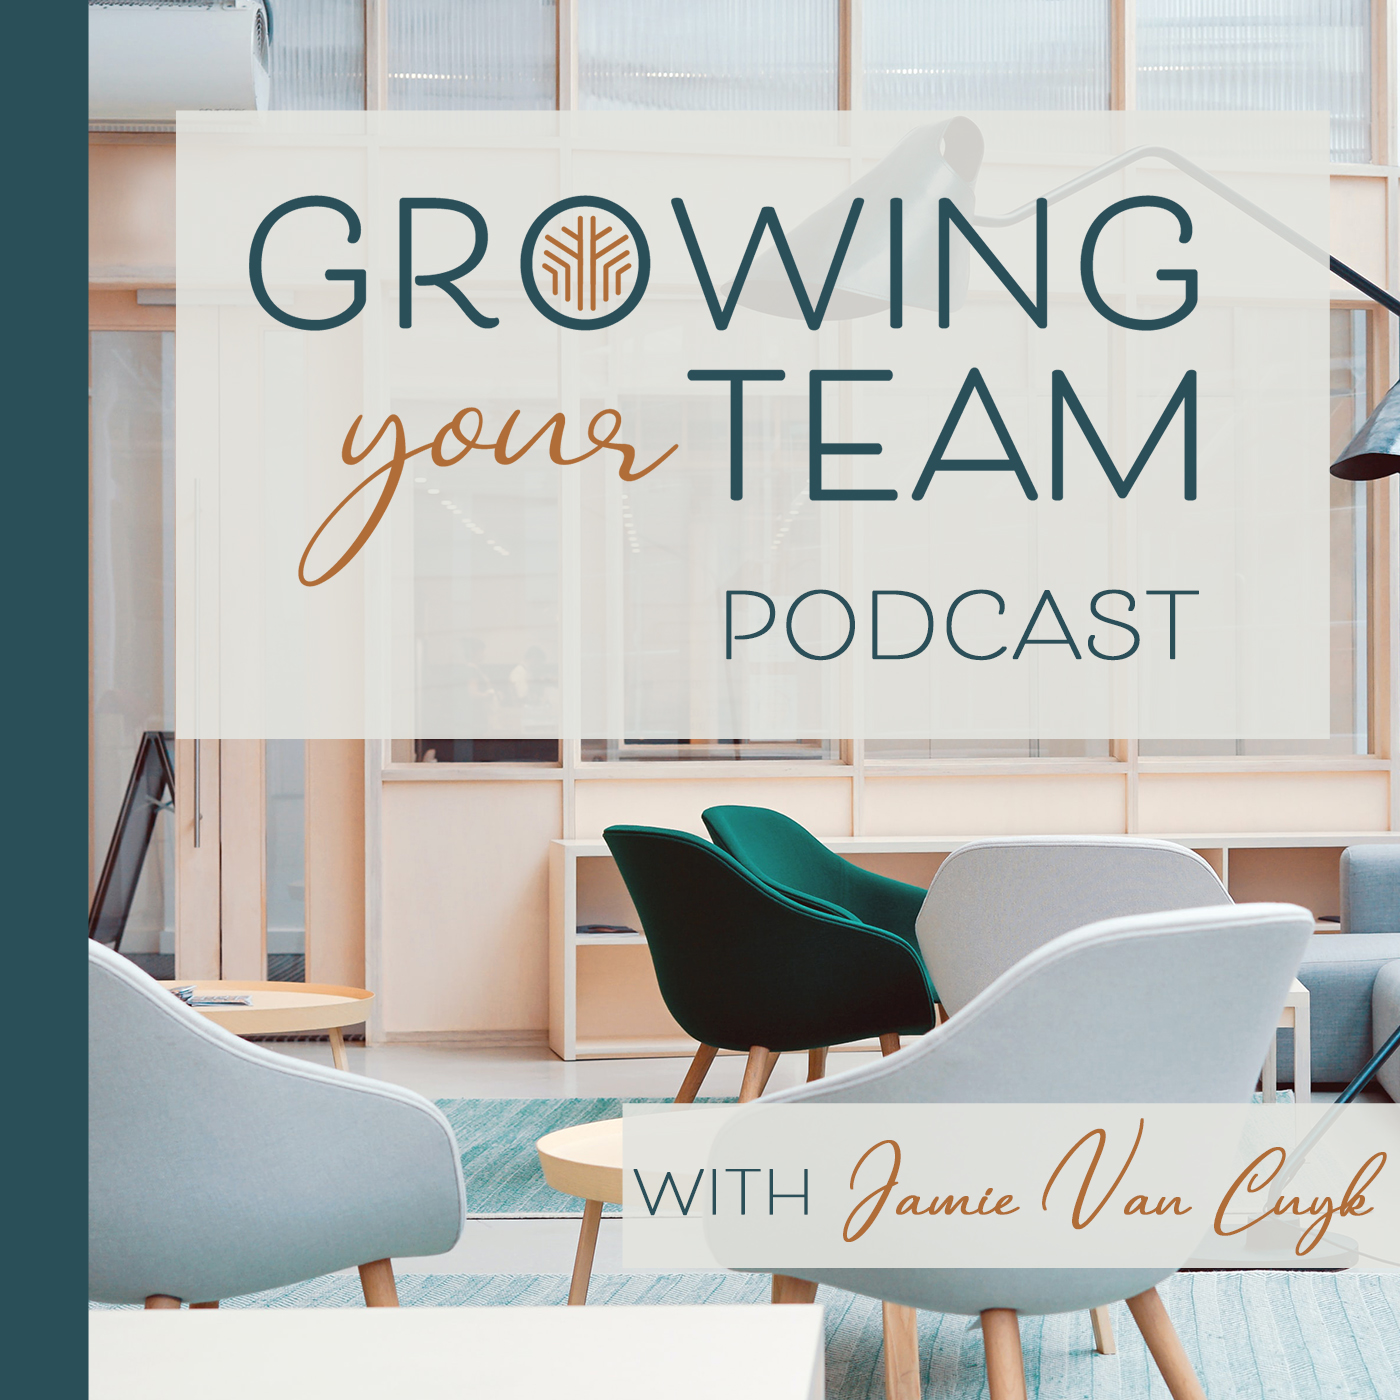 Growing Your Team Podcast with Jamie Van Cuyk podcast show image